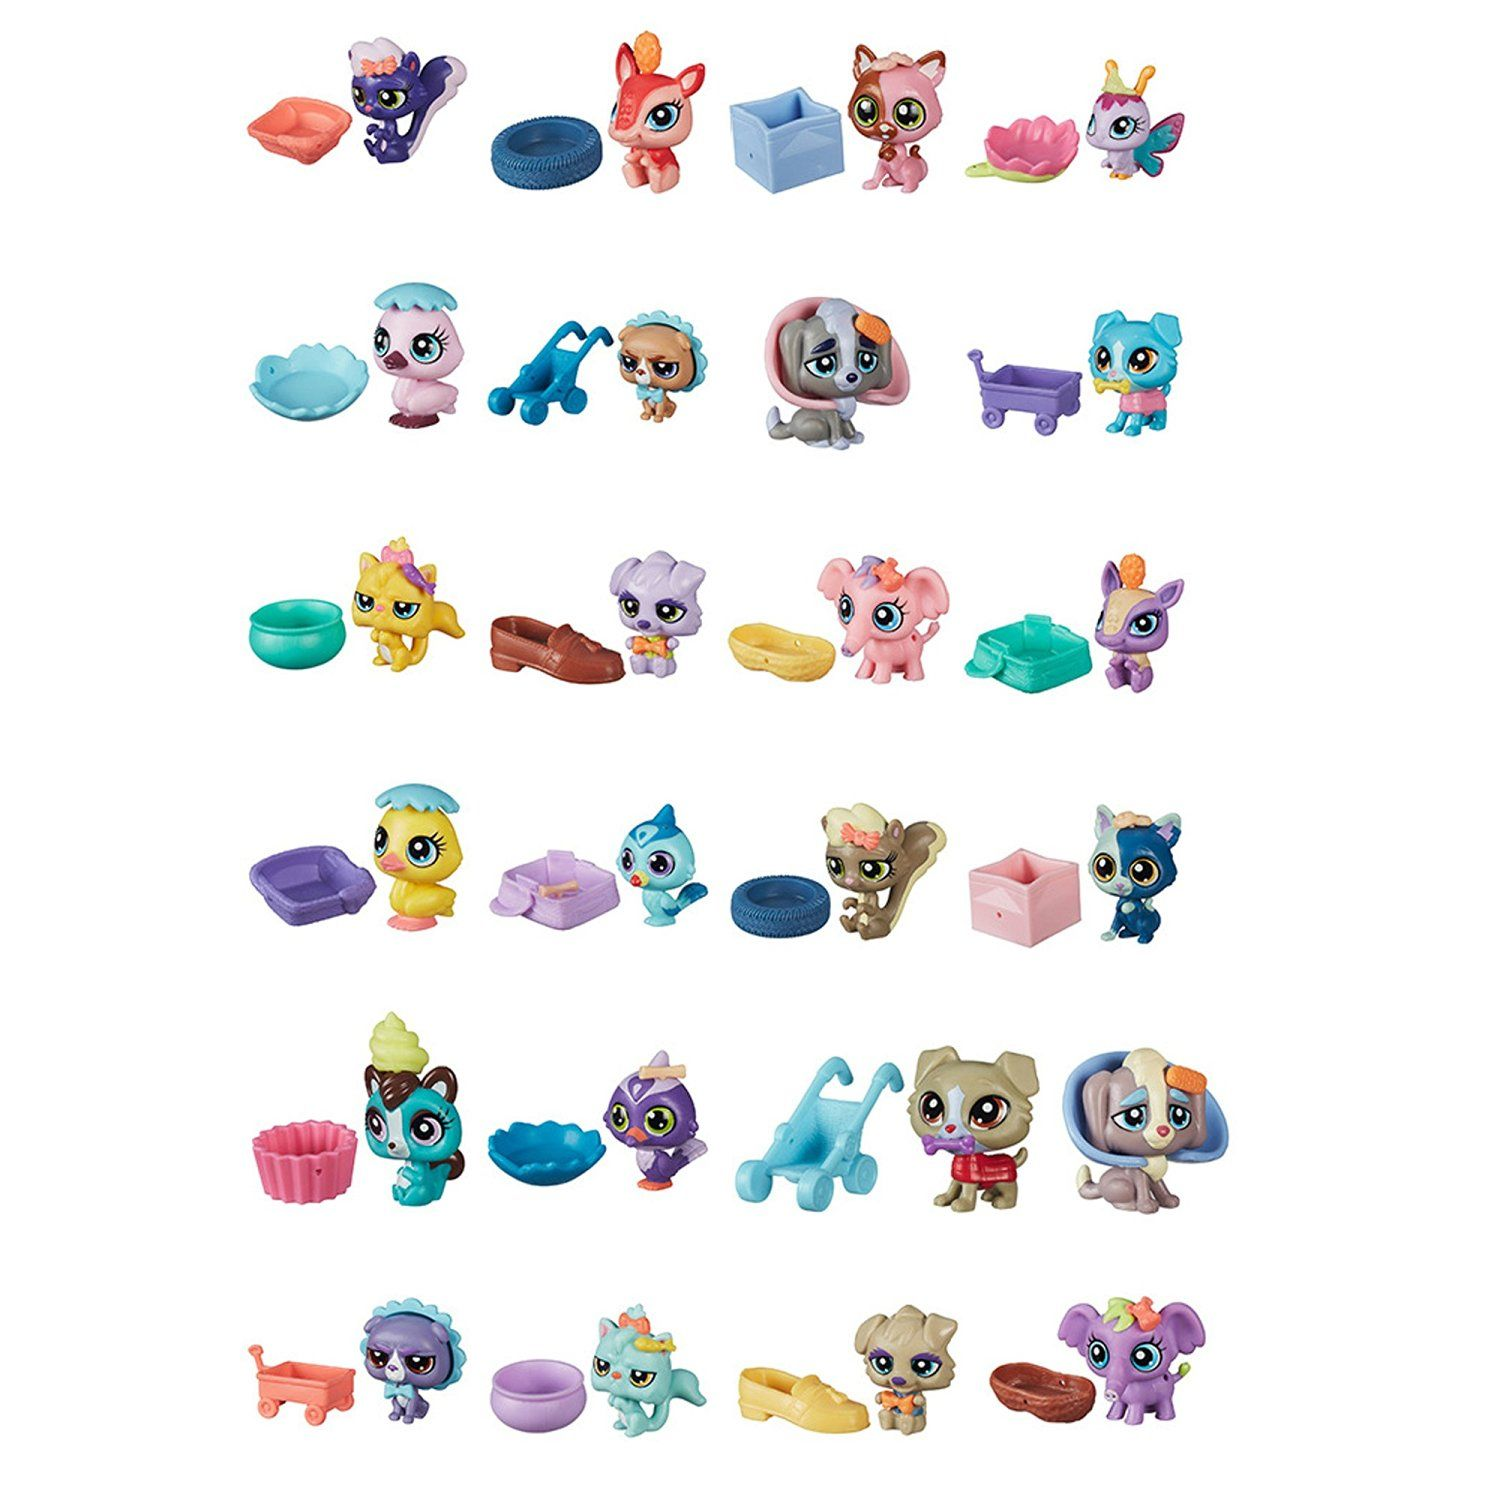 Amazon Com Littlest Pet Shop Mystery Bag Series 1 Toys Games Pet Shop Littlest Pet Shop Little Pets